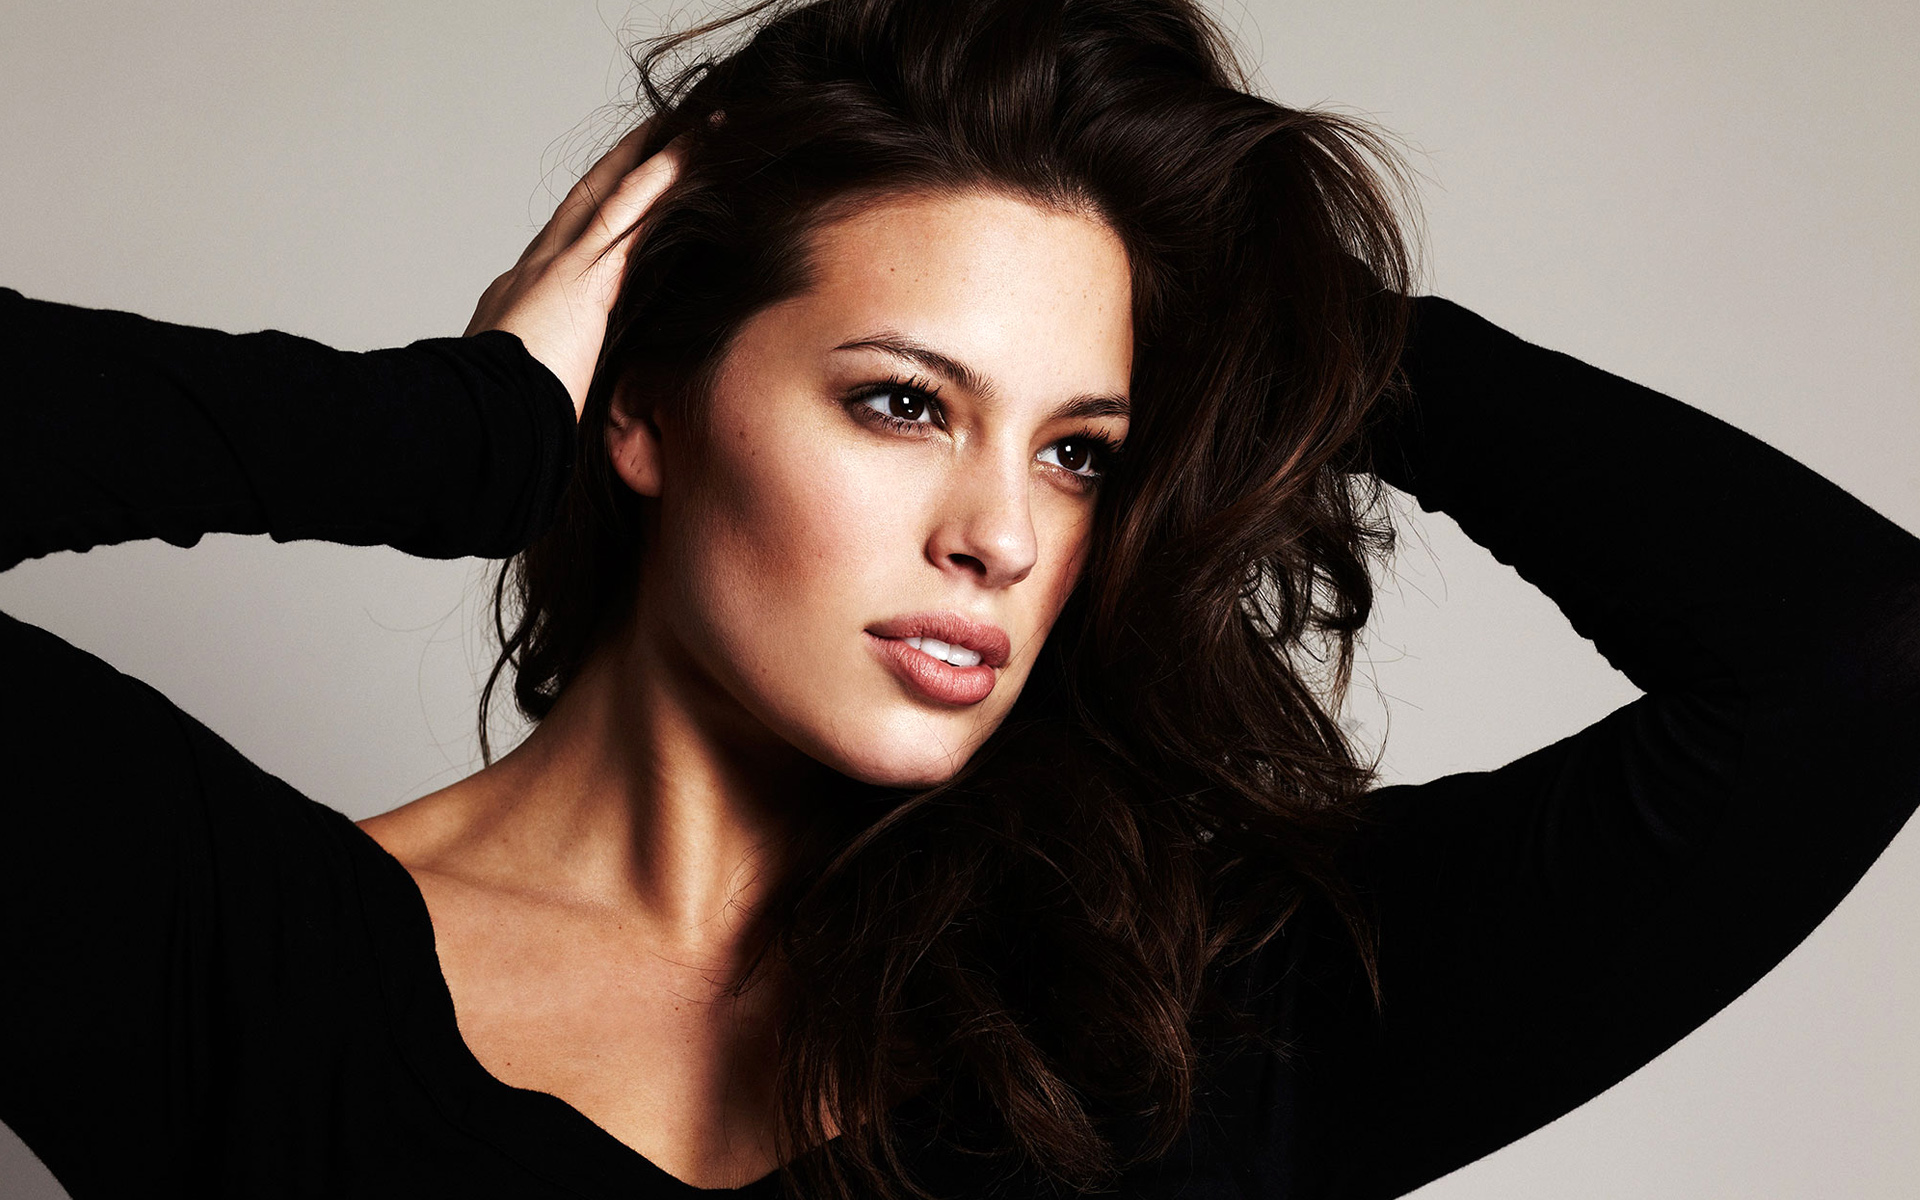 ashley graham widescreen computer background 1140